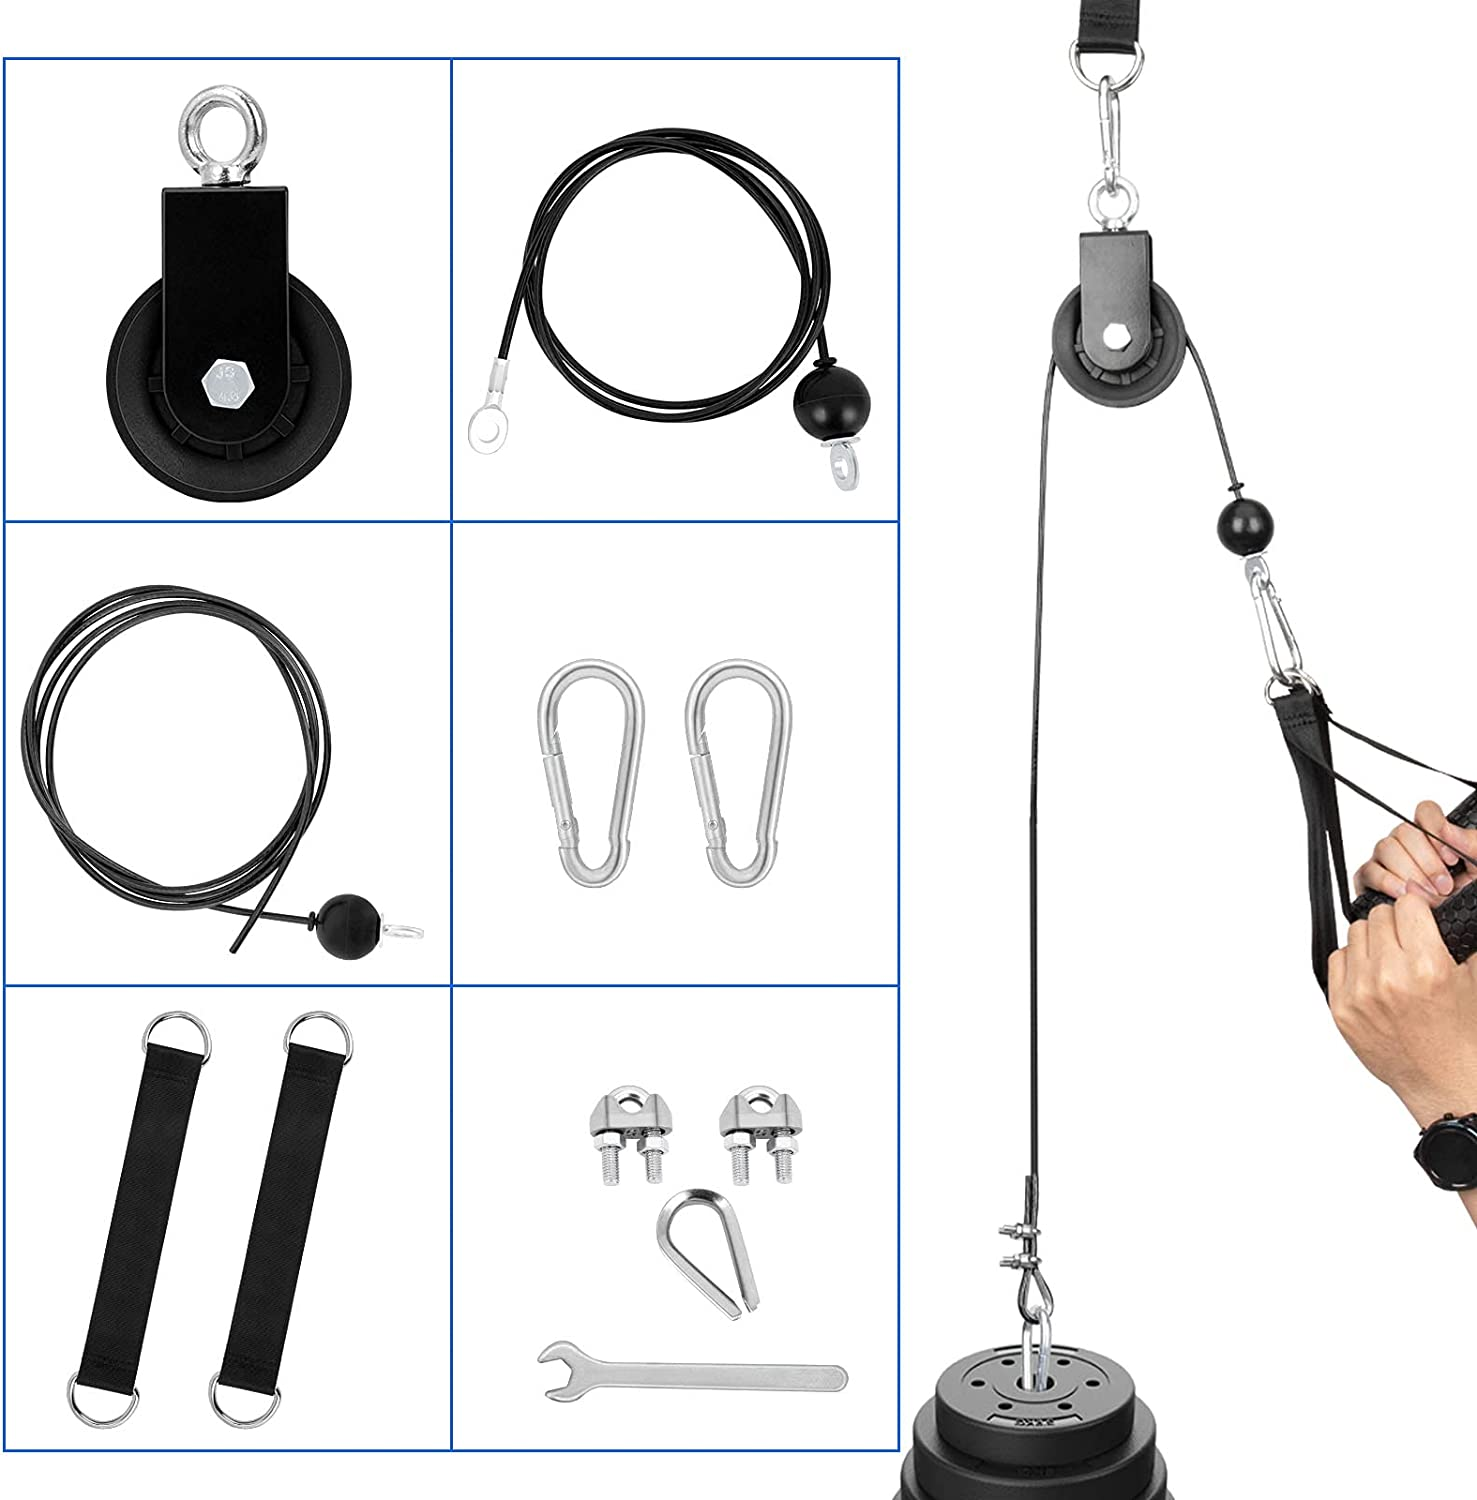 Apoaa Fitness Pulley System, Pulley Cable Attachment with 1.8M/2.3M Fitness Replacemnt Cable 360 Rotation Pulley Hanging Straps and Hoist Buckles for Home Gym Equipment Triceps Pull Down,Biceps Curl